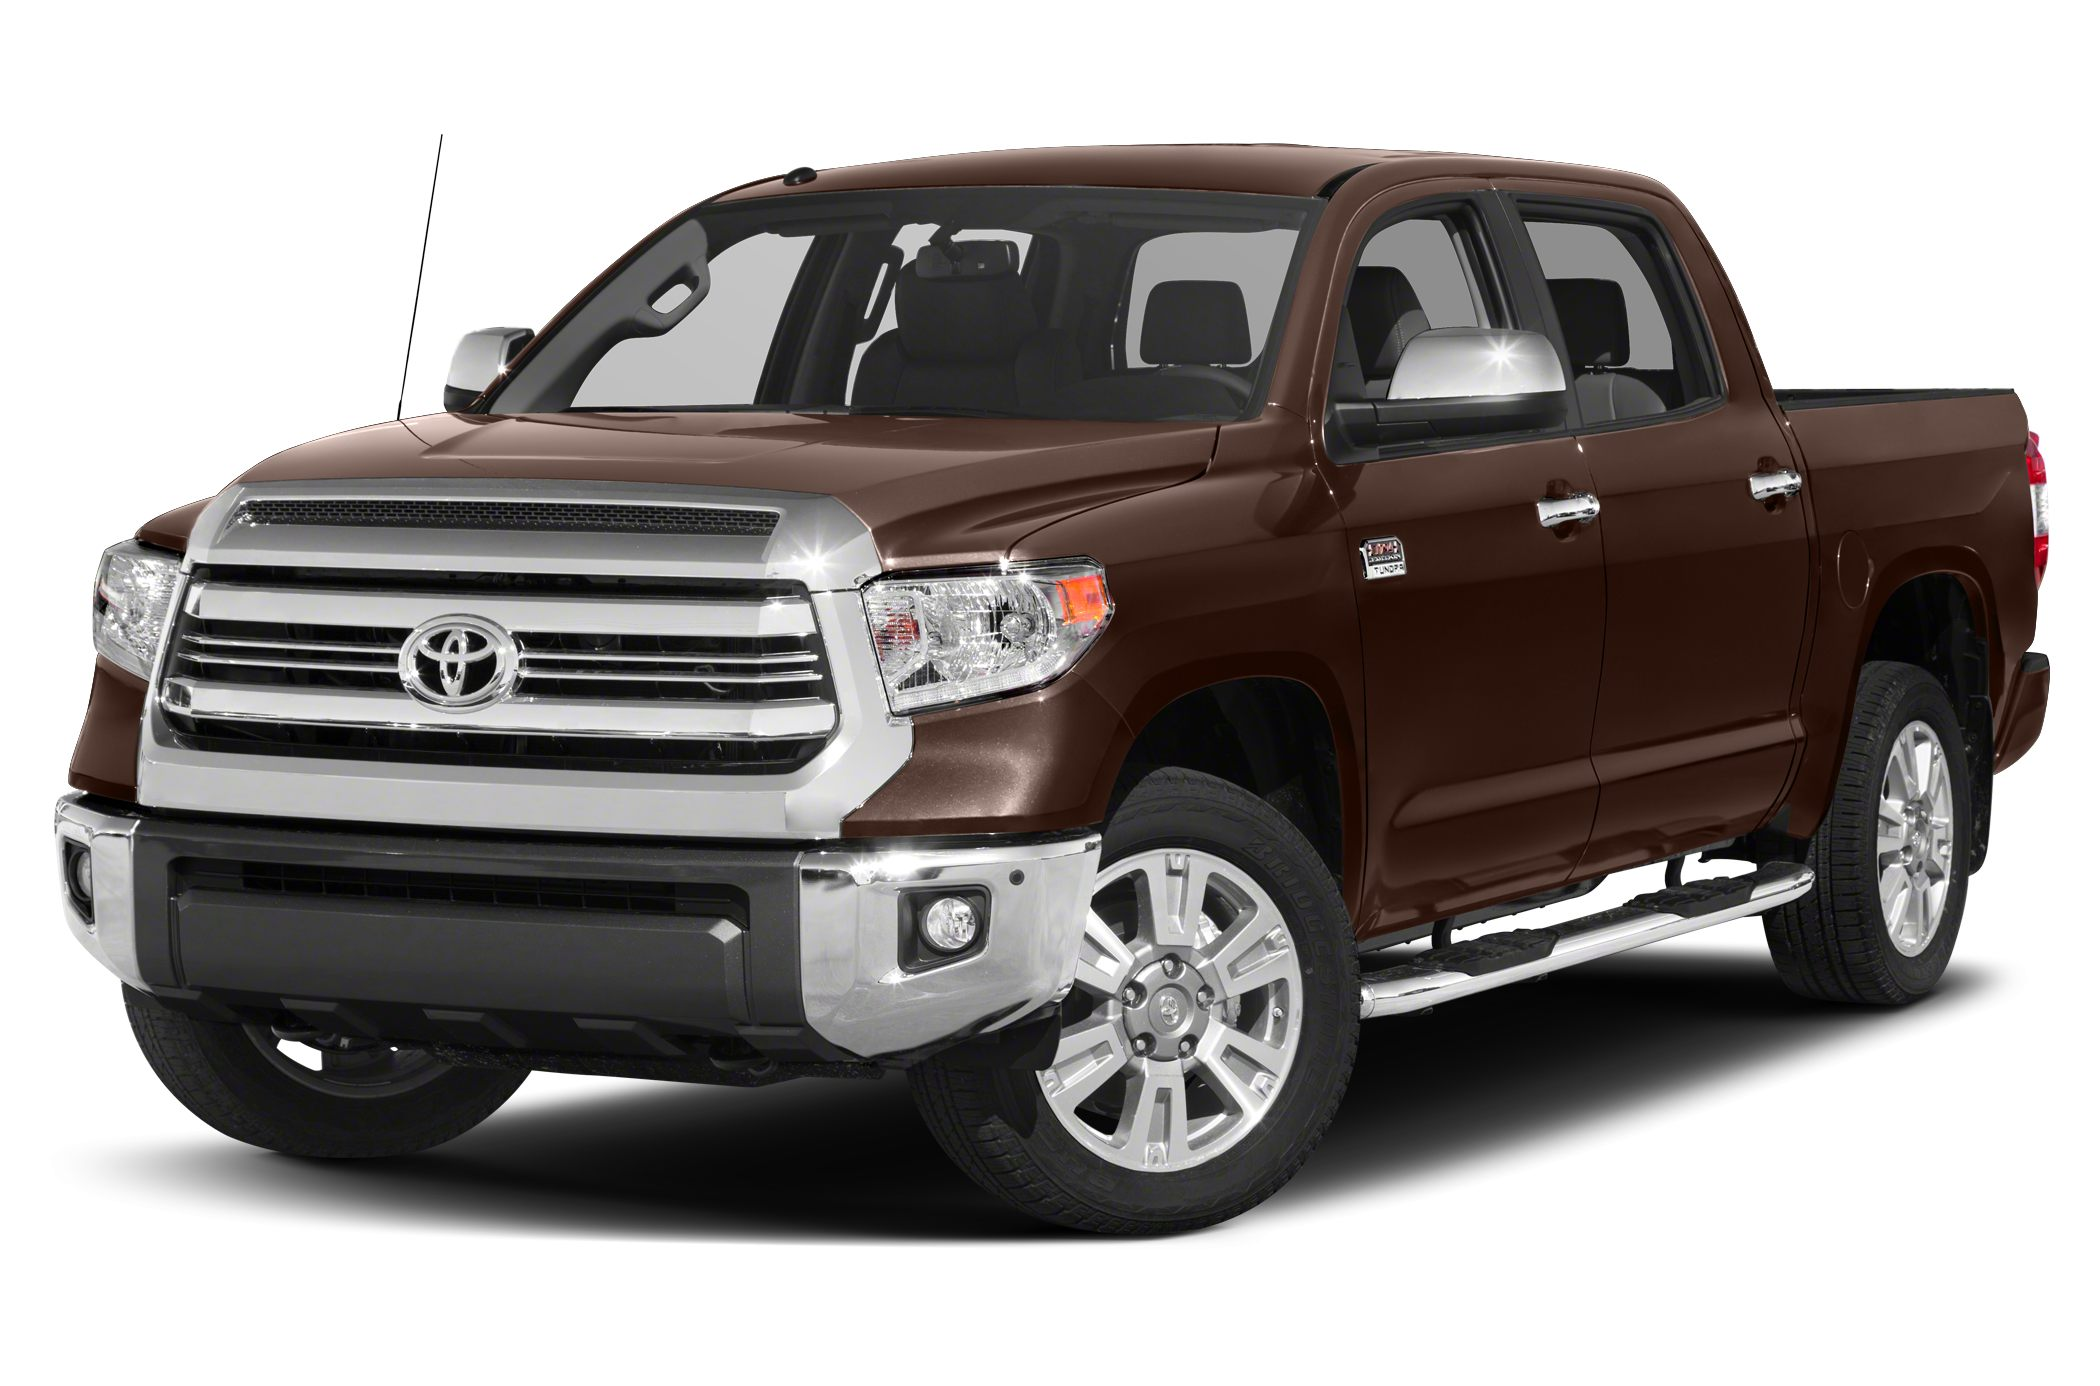 1794 5 7l V8 4x4 Crewmax 6 Ft Box 145 7 In Wb 2017 Toyota Tundra Photos